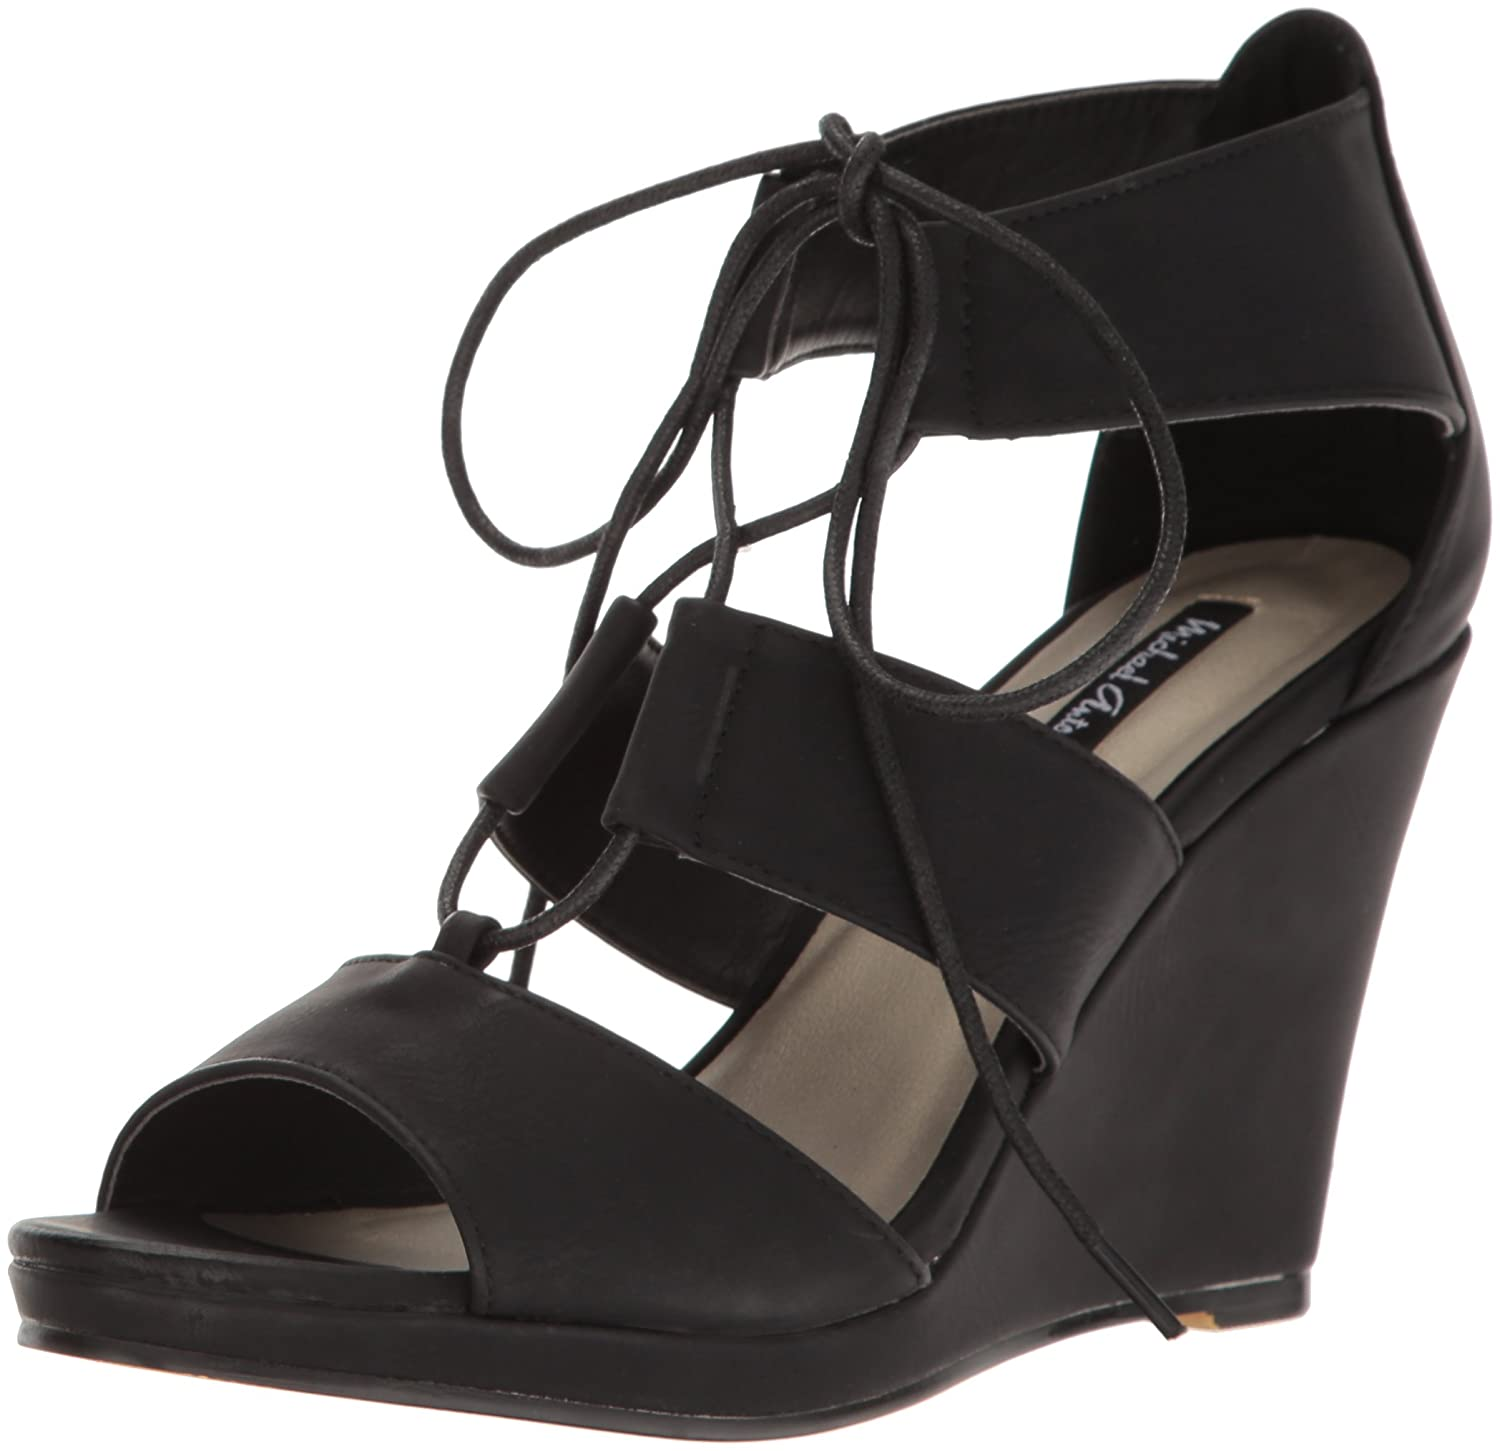 Michael Antonio Women's Andra Wedge US|Black Sandal B01N76WDK5 6.5 B(M) US|Black Wedge 999dff